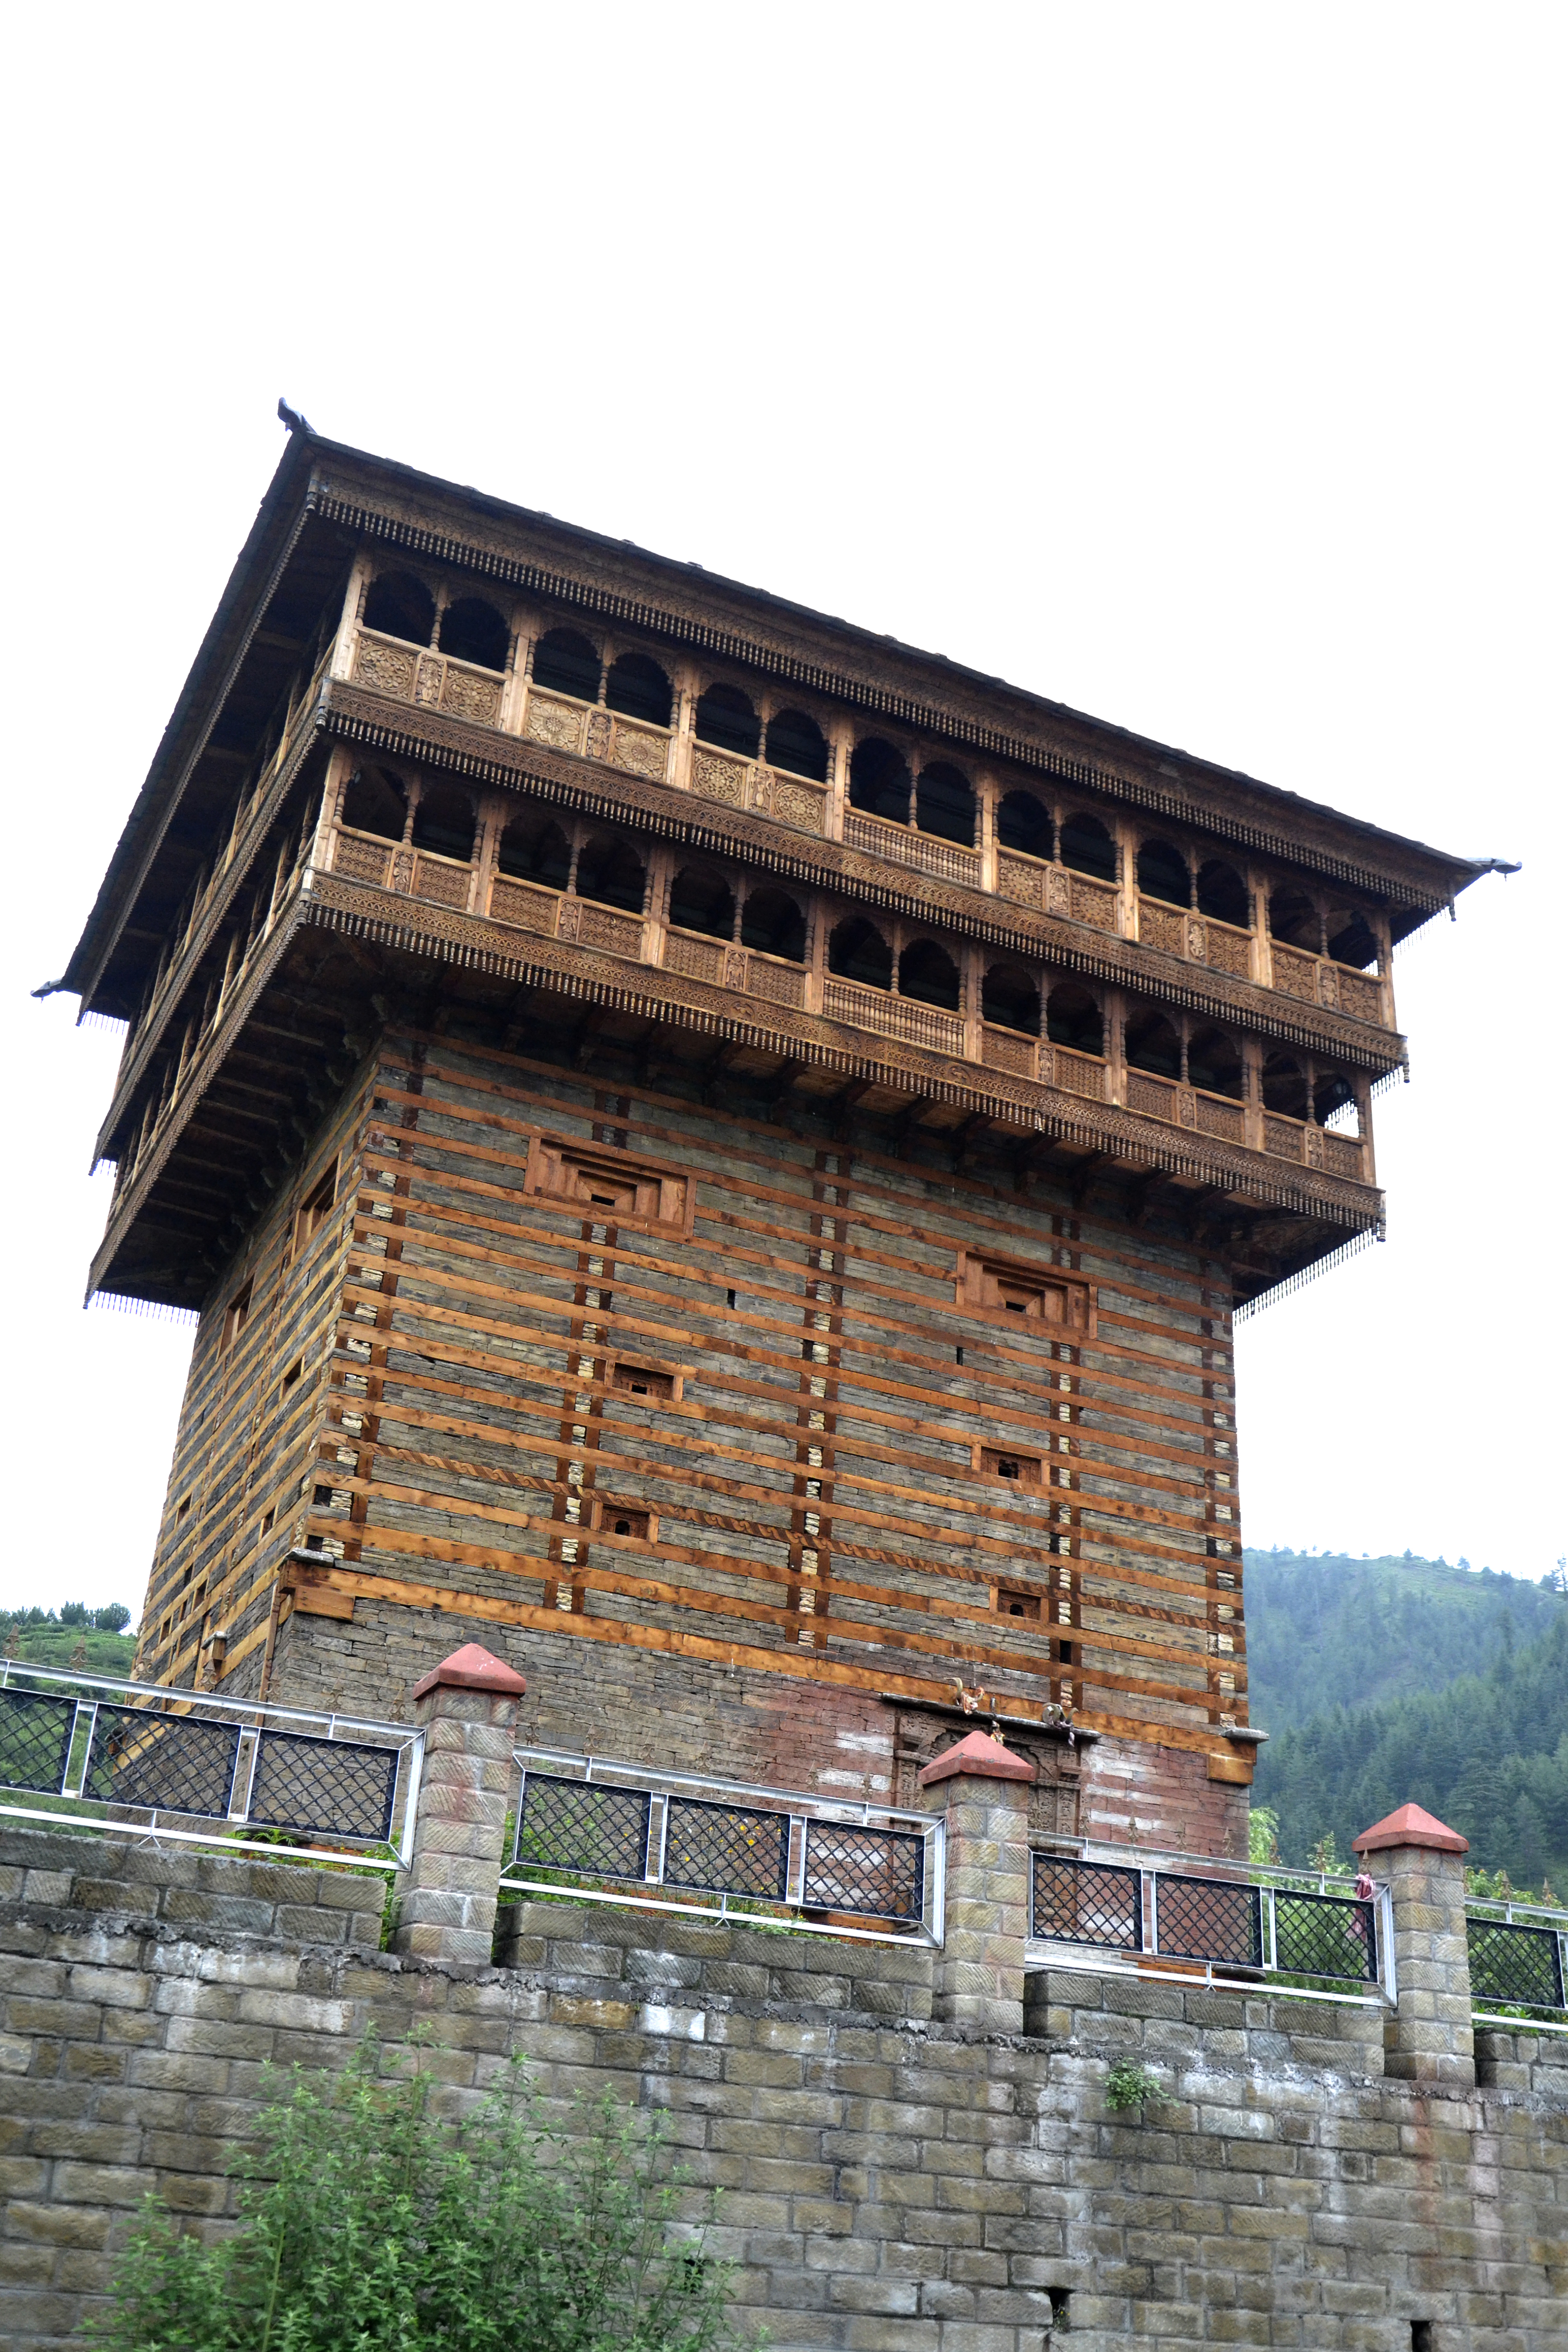 Projects of houses made of stone and wood: traditions and new technologies